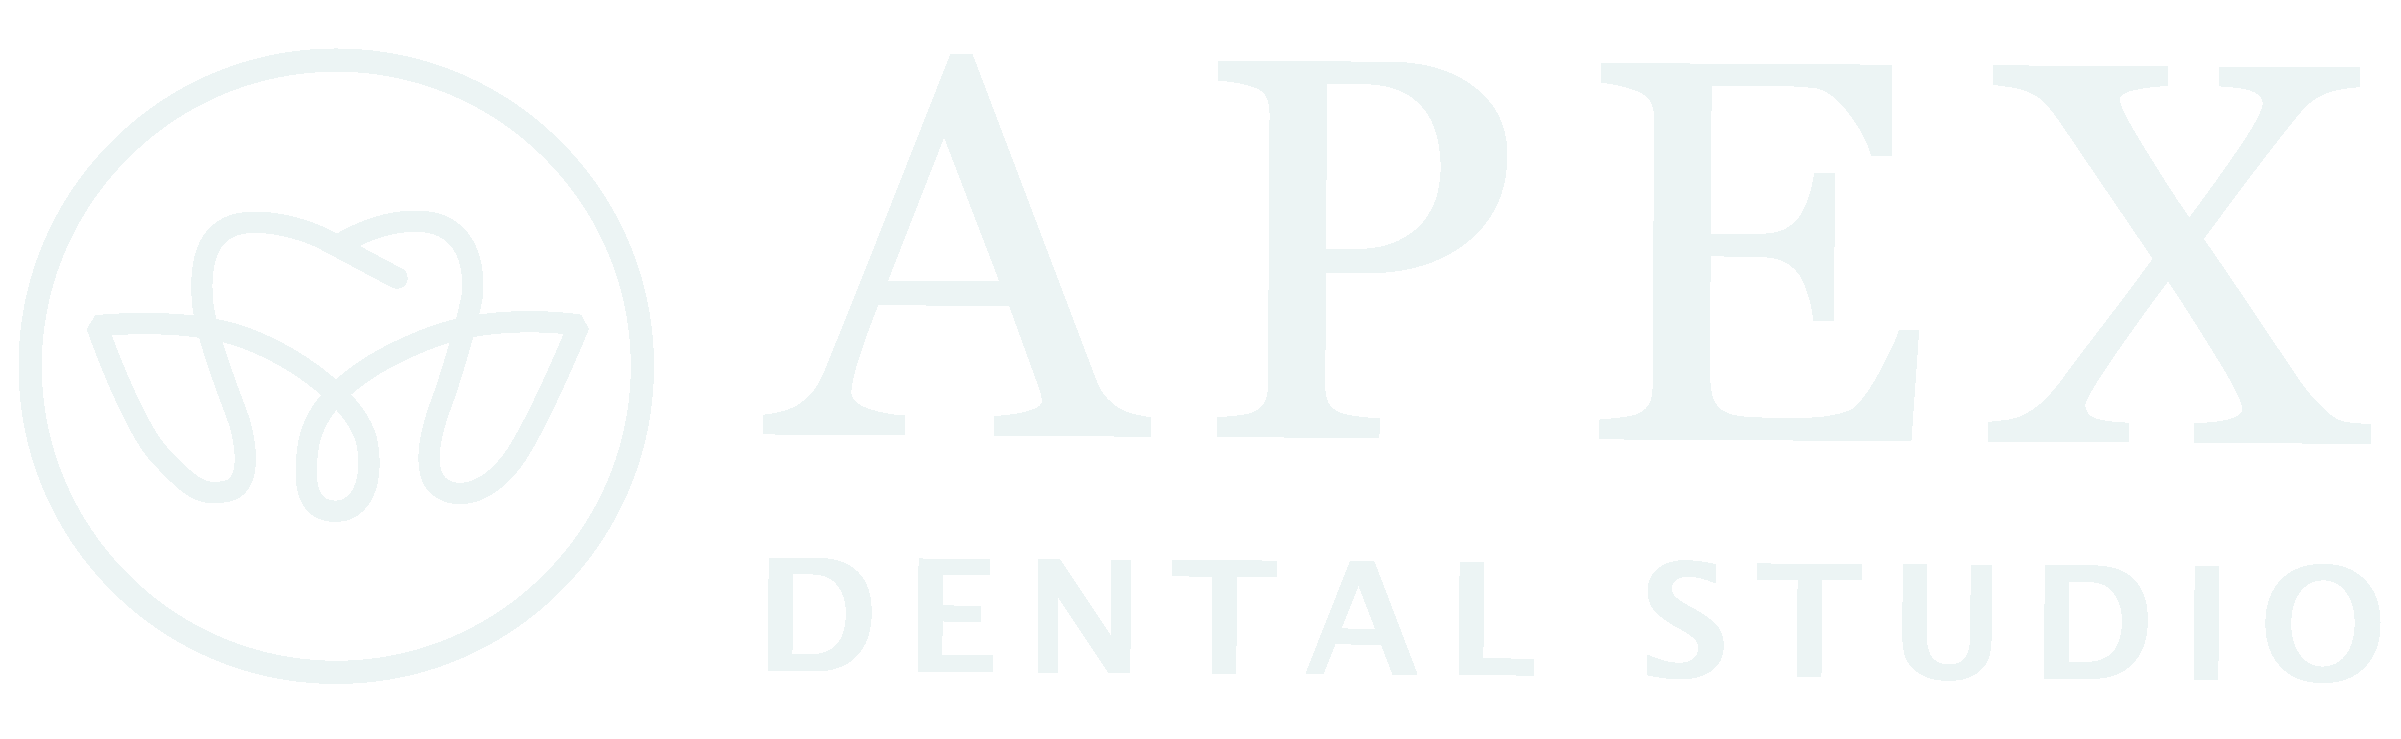 APEX DENTAL STUDIO TEXAS LOGO DENTISTRY REIMAGINE